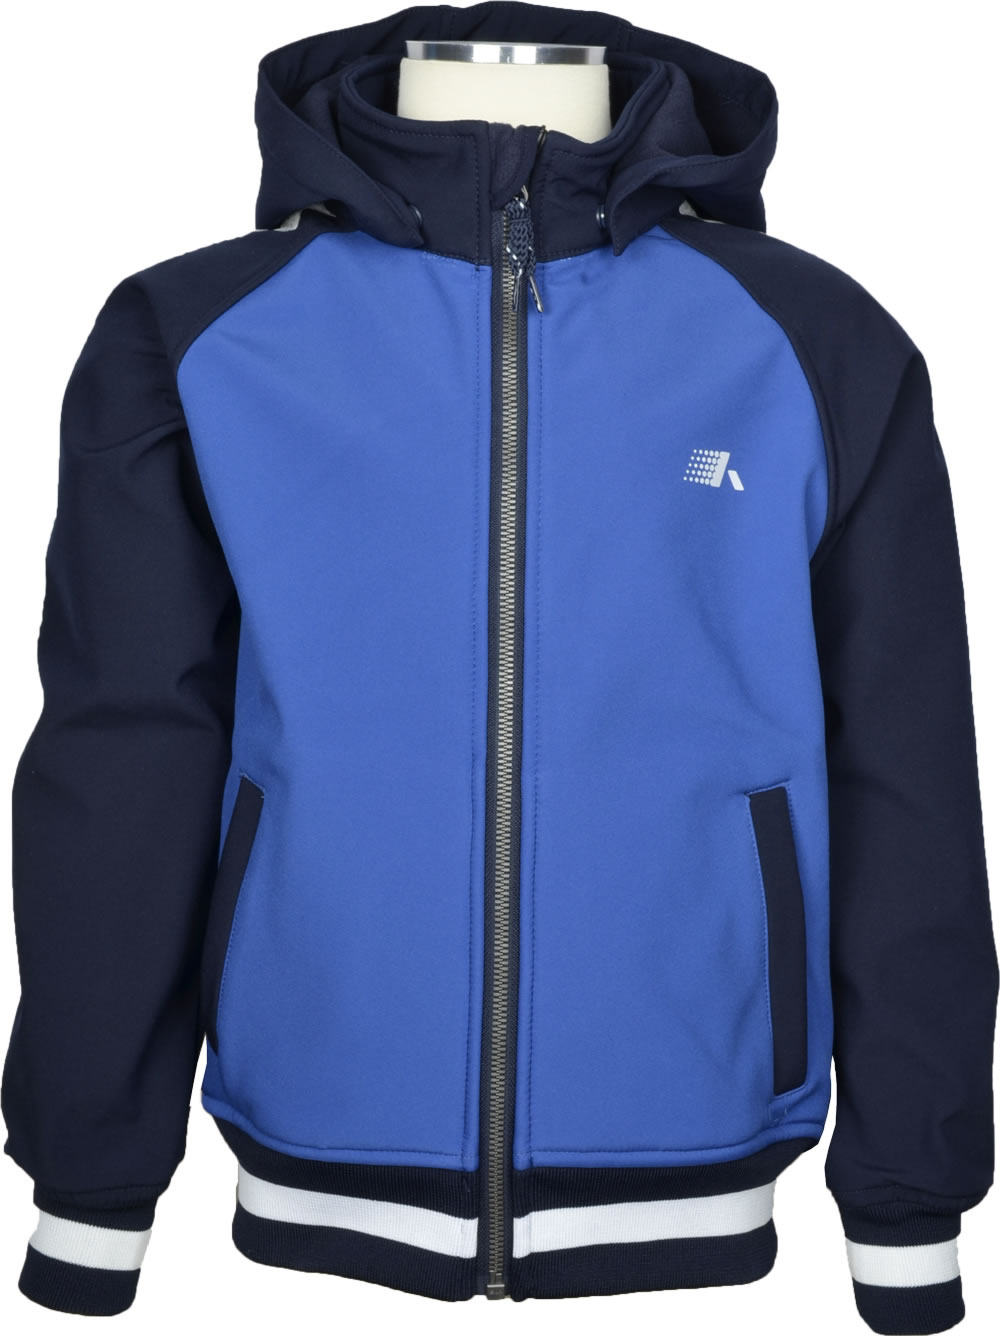 name it Softshell jacket NKMALFA Kids sky captain 13147772 online at Papiton.